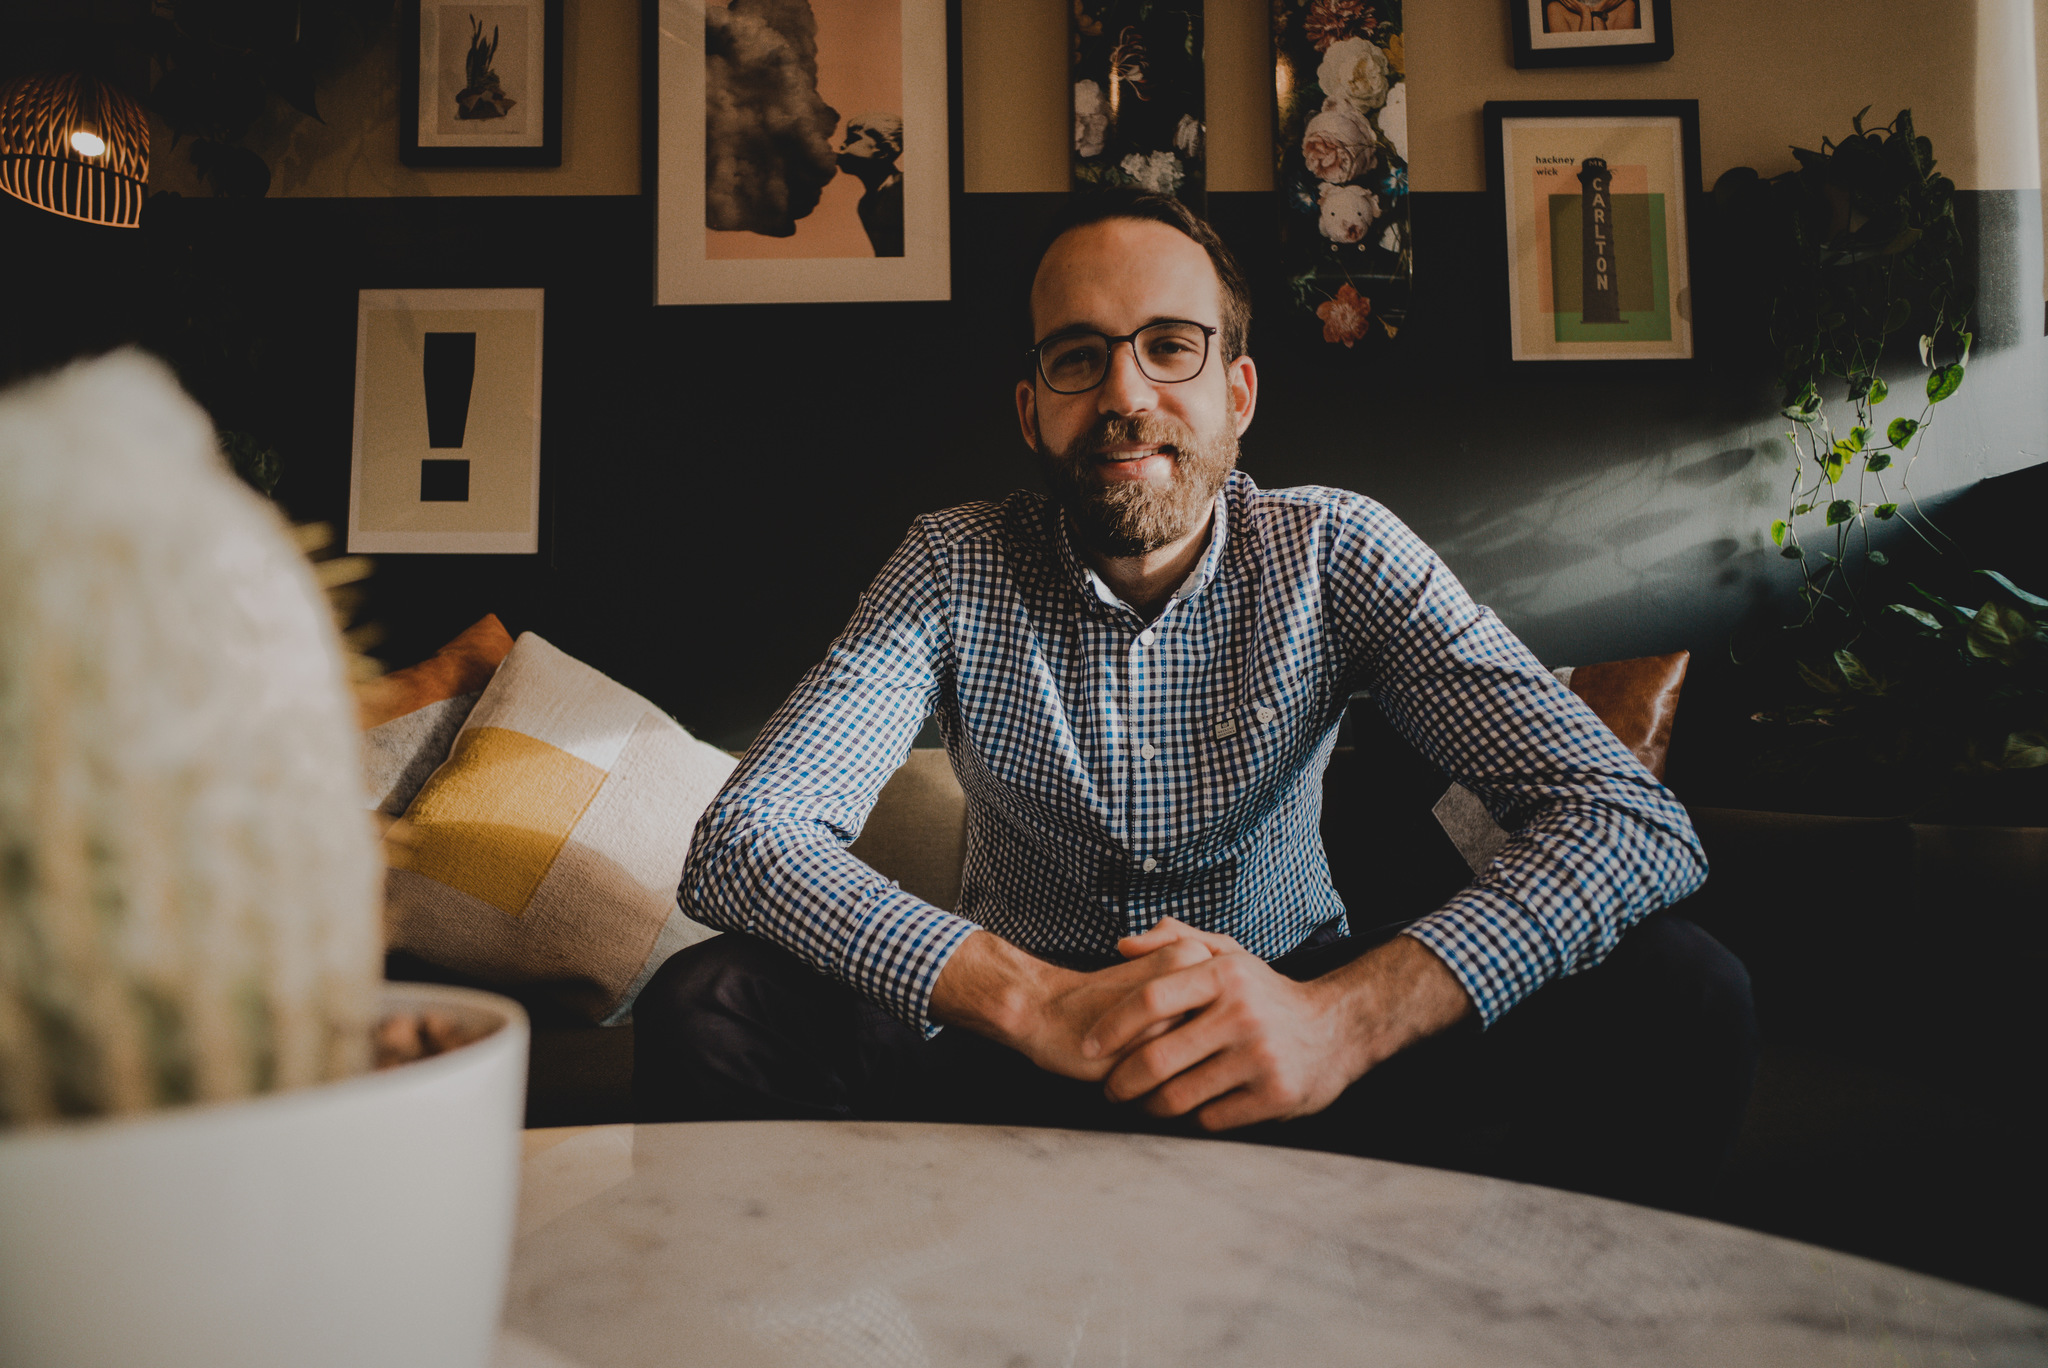 ALIVE Boutique founder Lucas Windhager